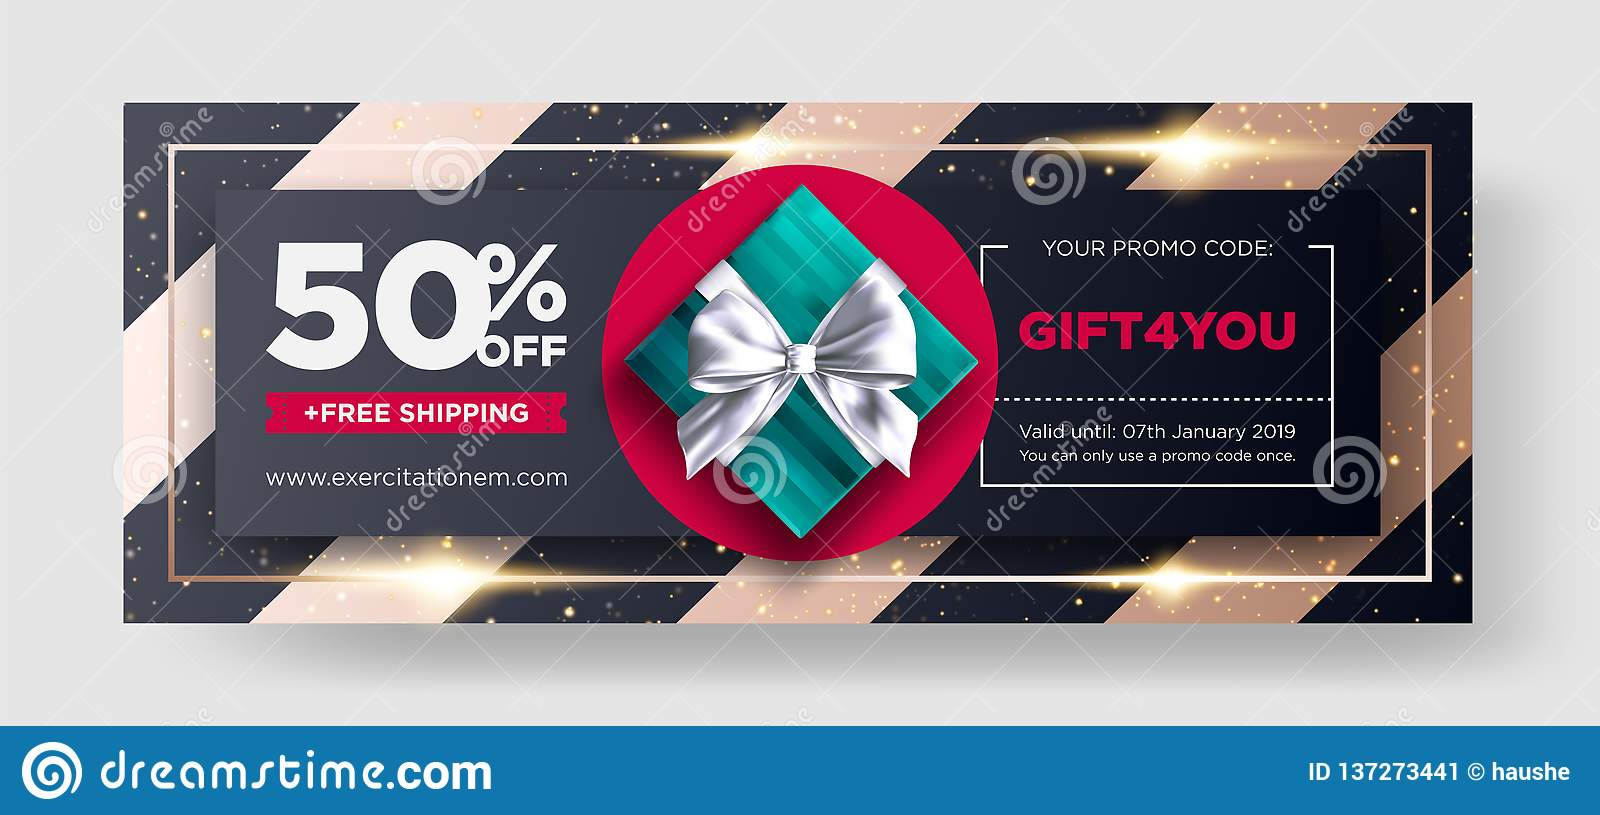 Vector Gift Voucher. Restaurant Discount Coupon Design with Promo Code. Certificate Template for Online Shopping. Marketing Flyer